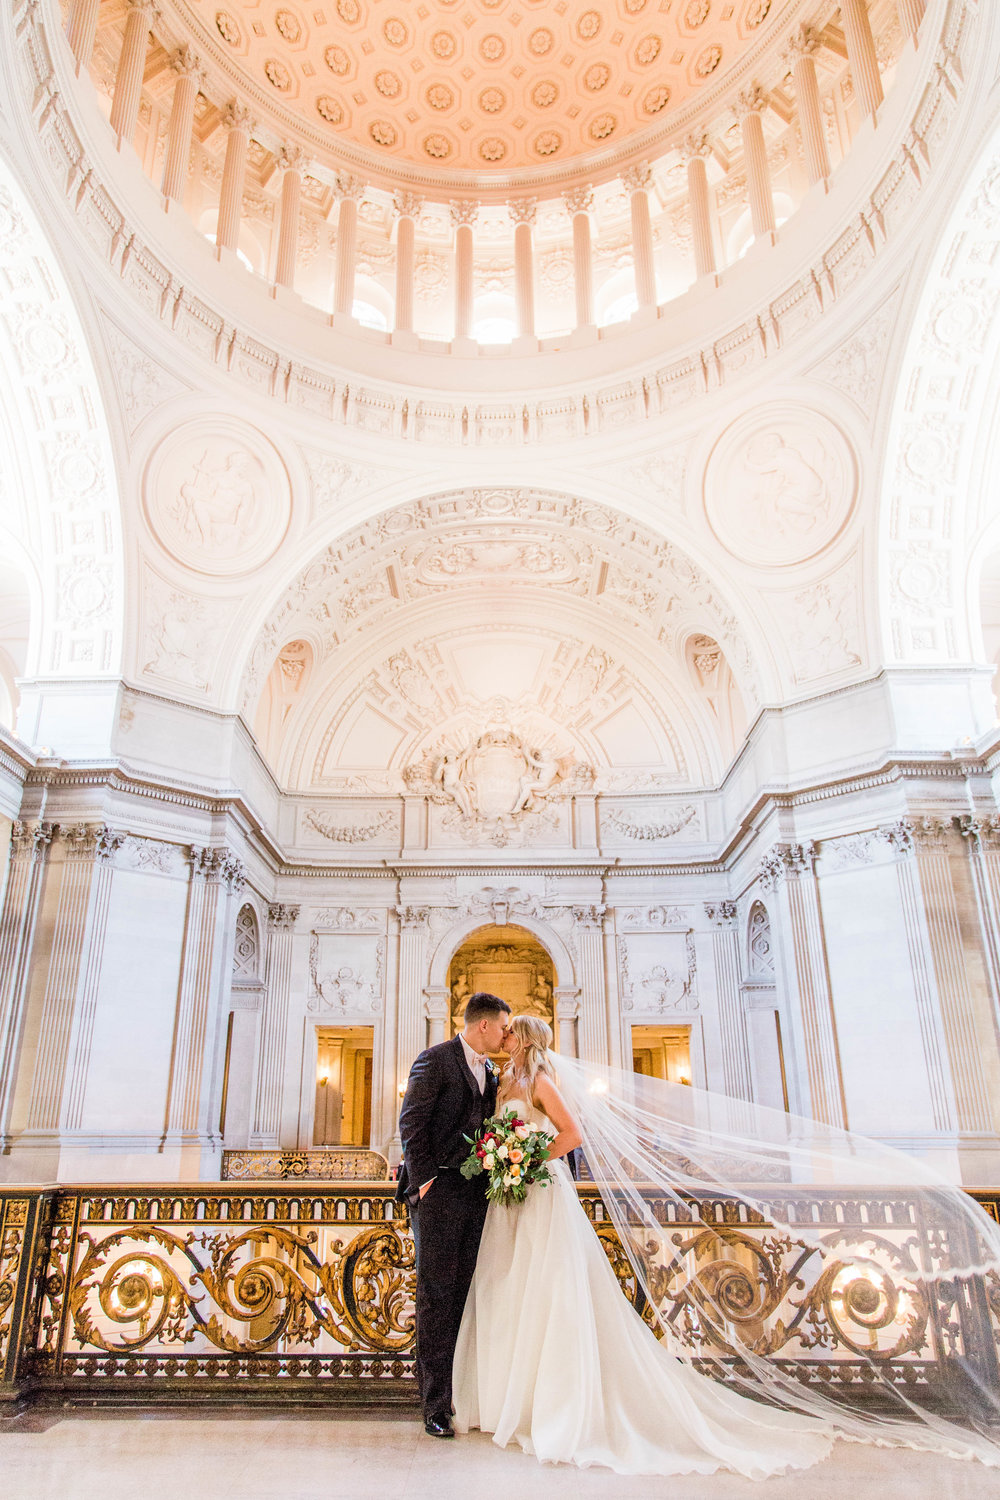 DennisRoyCoronel_Photography_SanFranciscoCityHall_Wedding-93.jpg